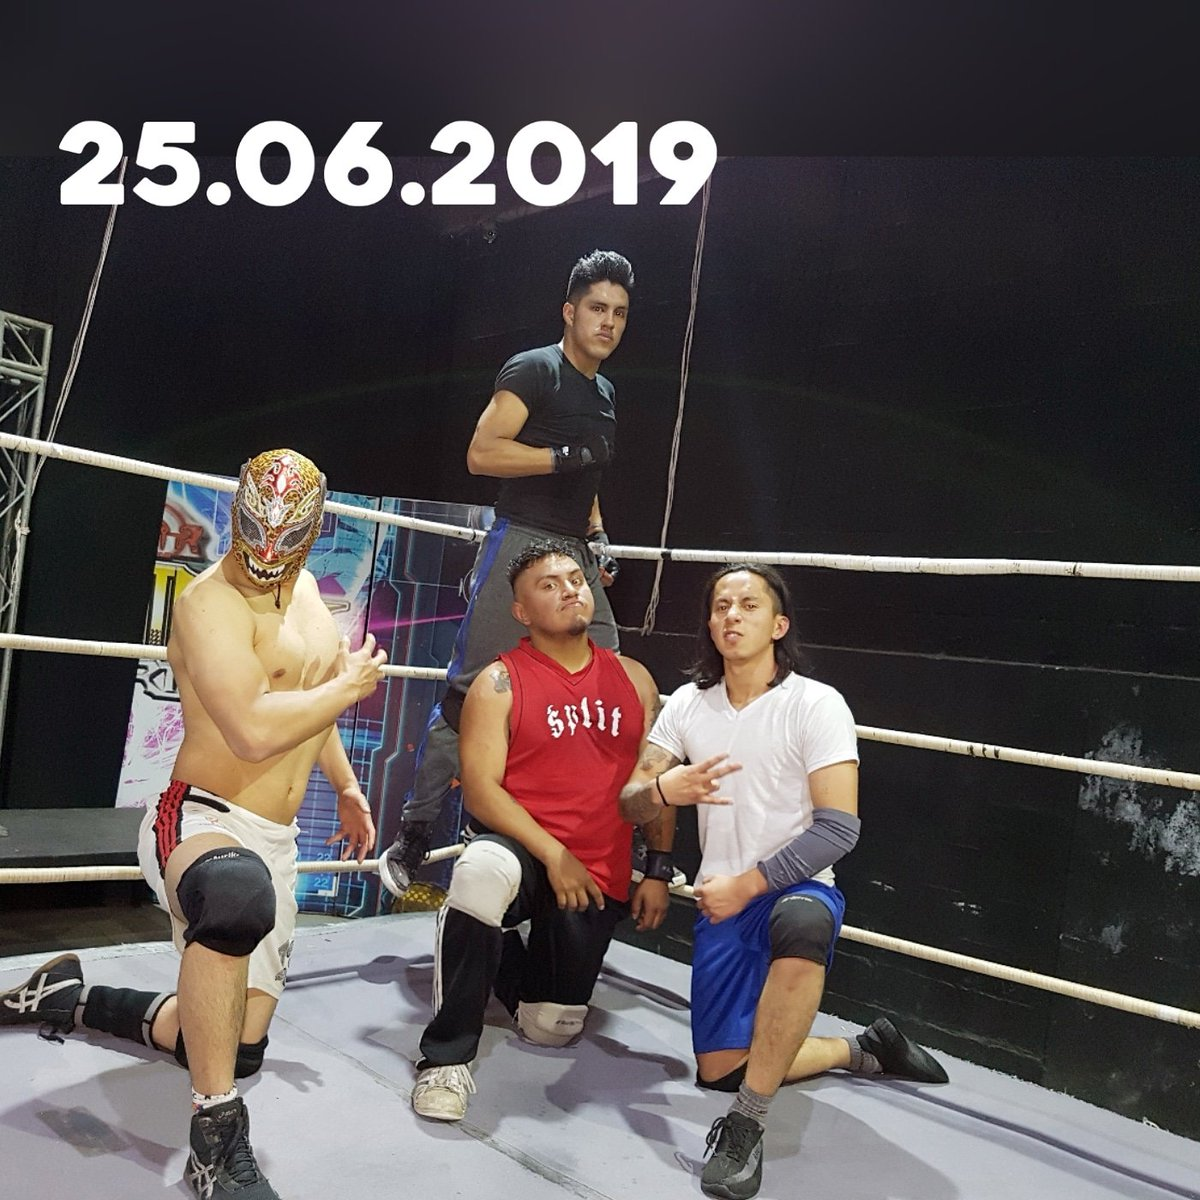 Tuesday finishing preparing for this 29 in the event of @reyesdelcachascanec  . . . . #reyesdelcachascan #wrestling #wrestler #lucha #luchalibre #SkyEspectaculoDeportivo #training💪 #passion #ring